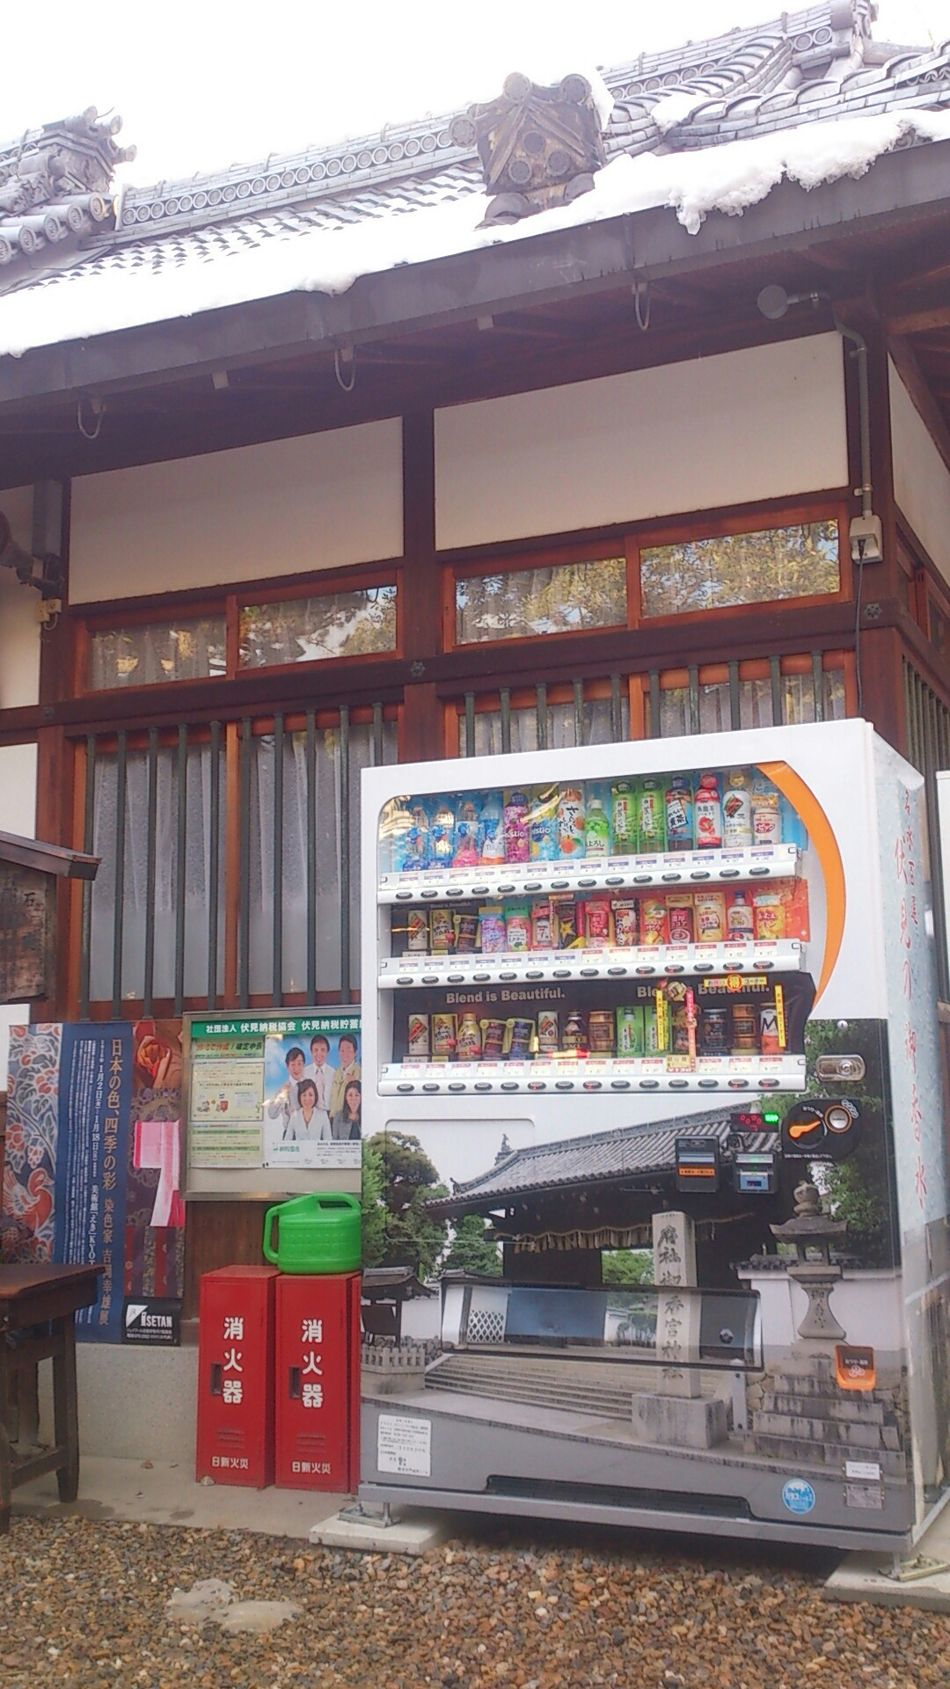 Happy New Year 2015 Vending Machine Usual Japan Usual Kyoto At Shrine Old And New Japan